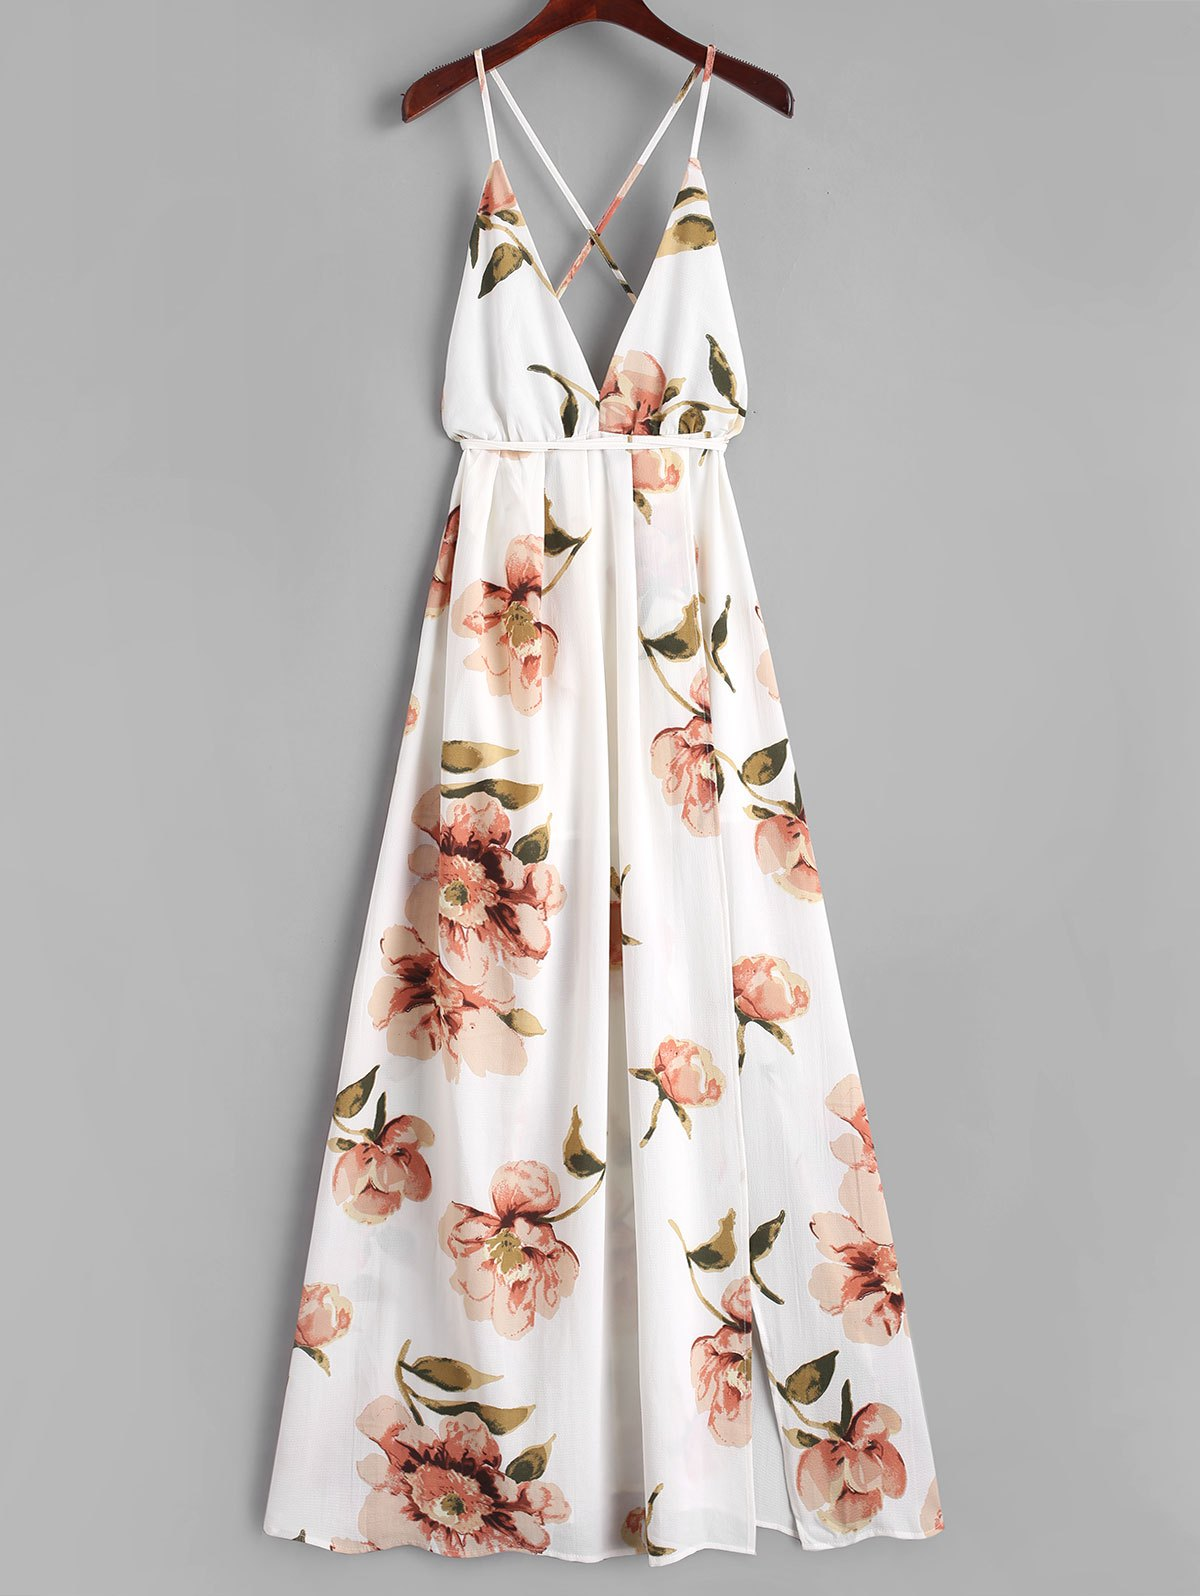 2018 Criss Cross Slit Floral Maxi Dress White S In Maxi